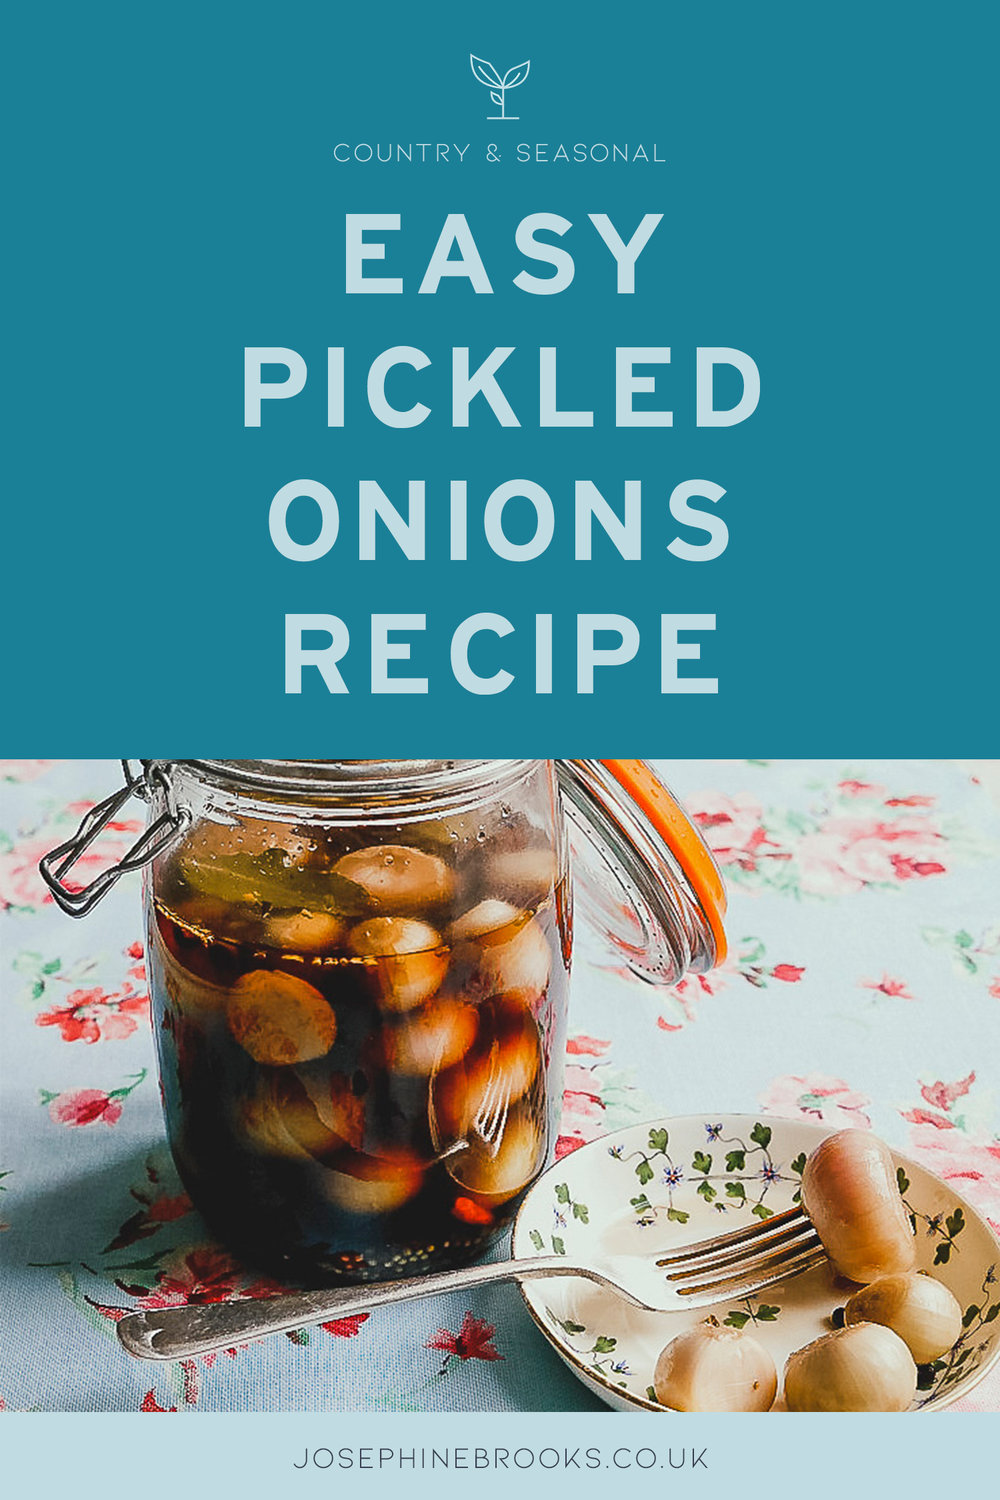 Easy Pickled Onions Recipe - easy peasy and straight forward homemade pickled onions or shallots